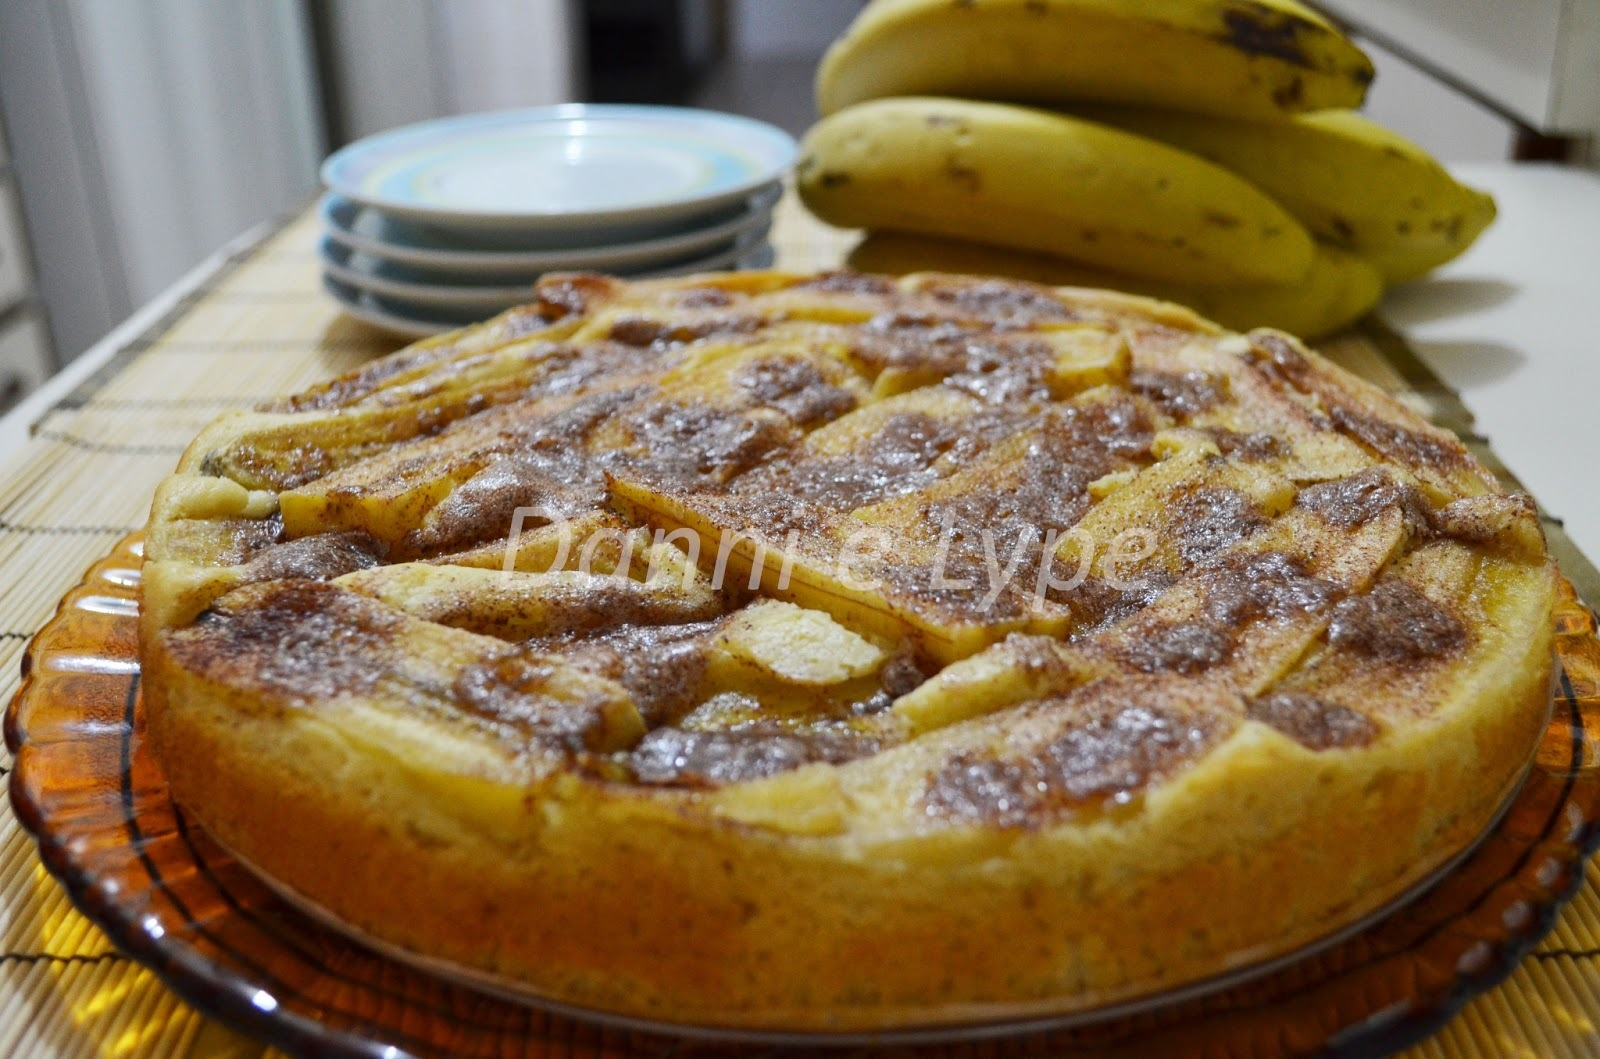 Bolo de Banana da Renata (versão normal e diet)